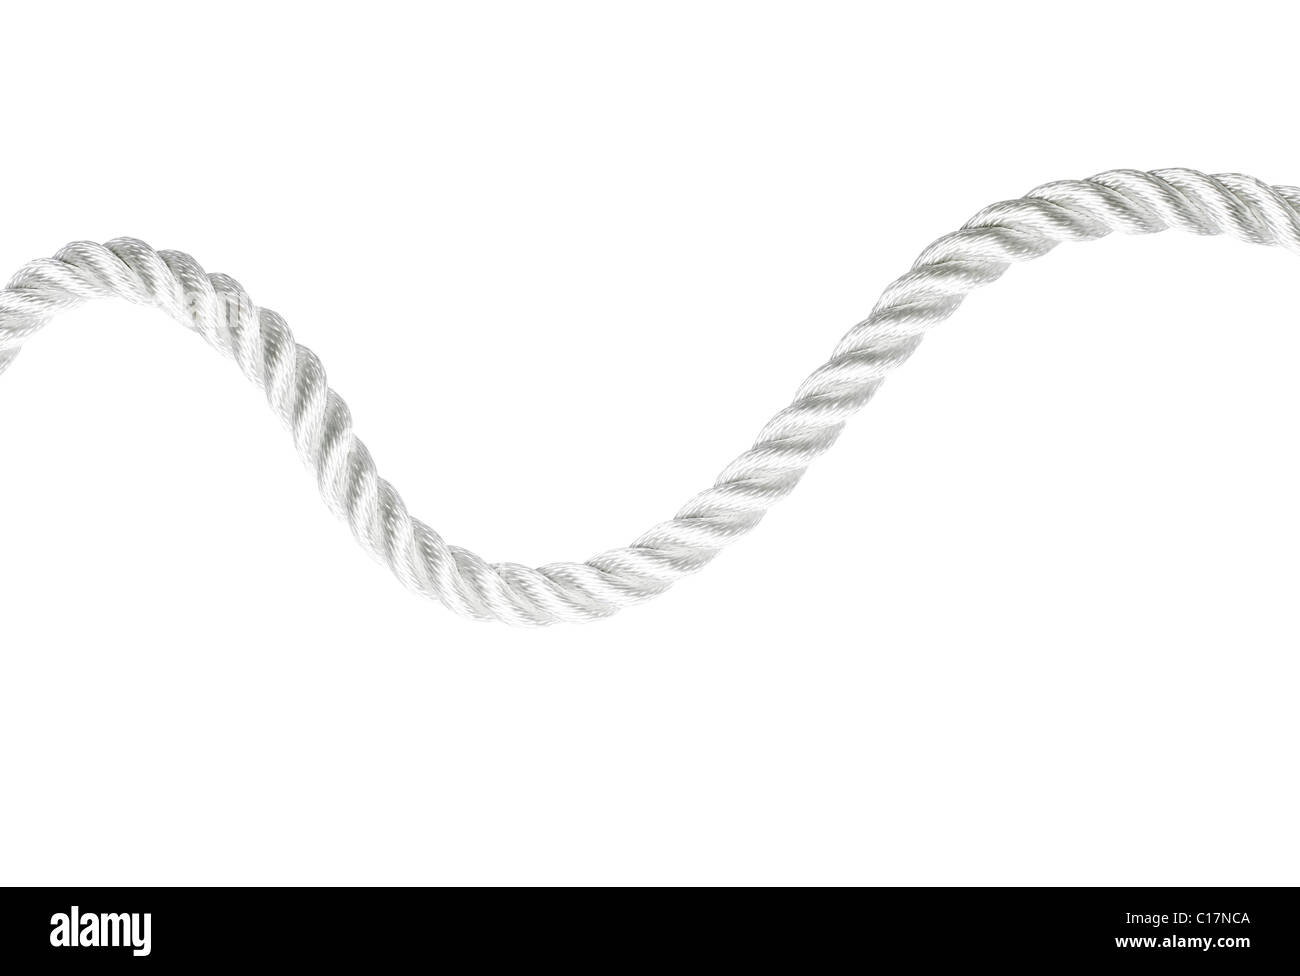 Simple white rope isolated - Stock Image